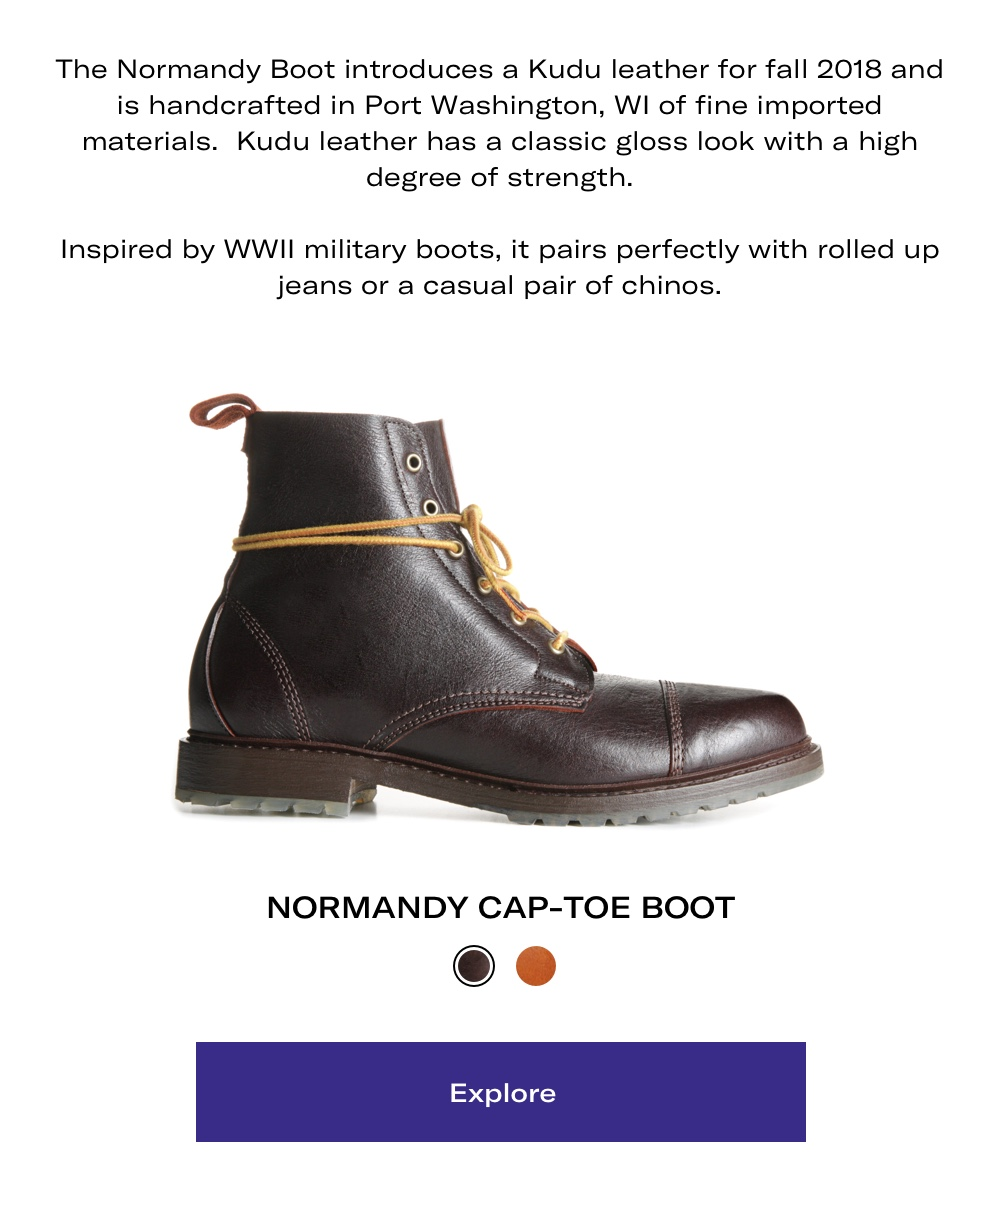 Explore the Normandy Boot